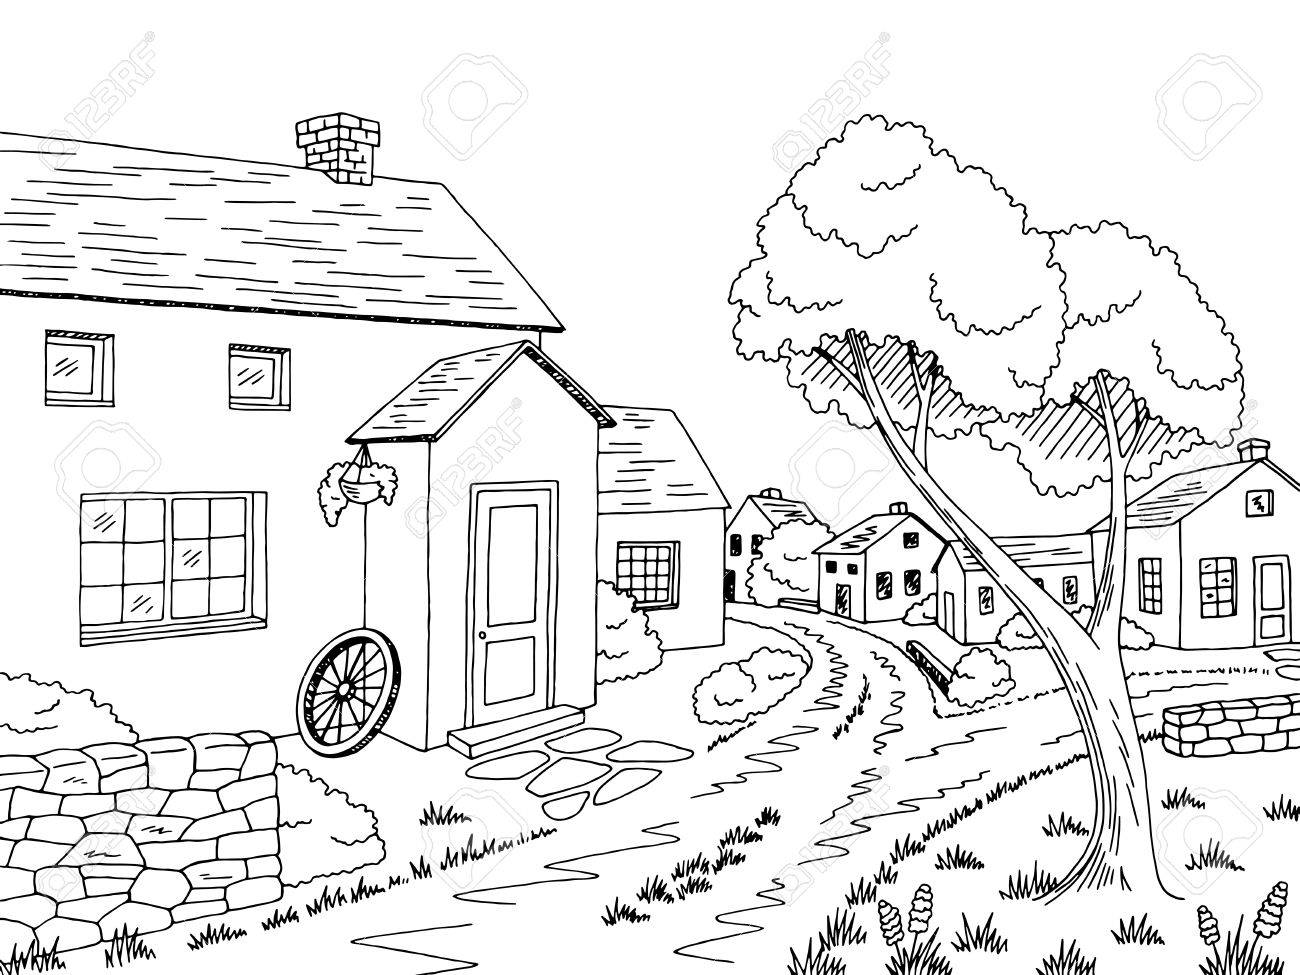 Street clipart black and white 7 » Clipart Station.